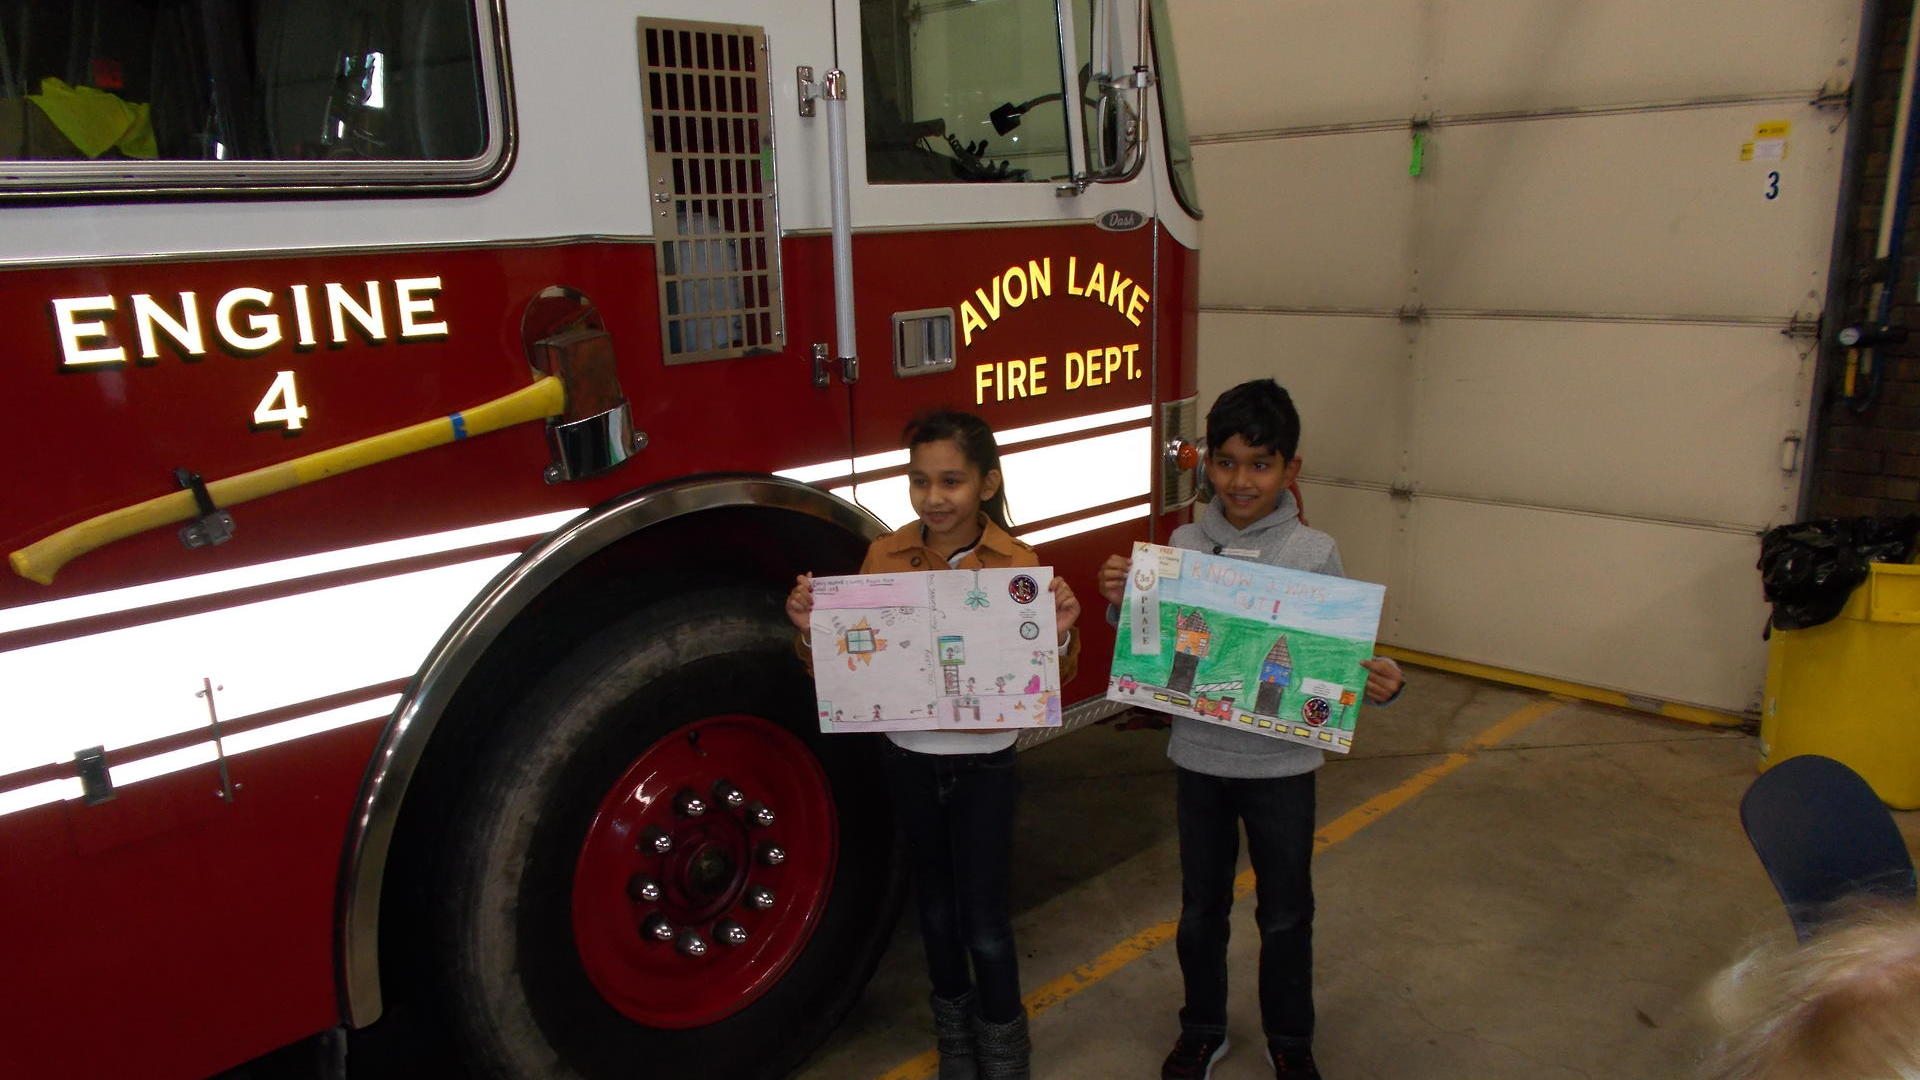 two children holding their posters which won a trip to the fire house in Avon Lake